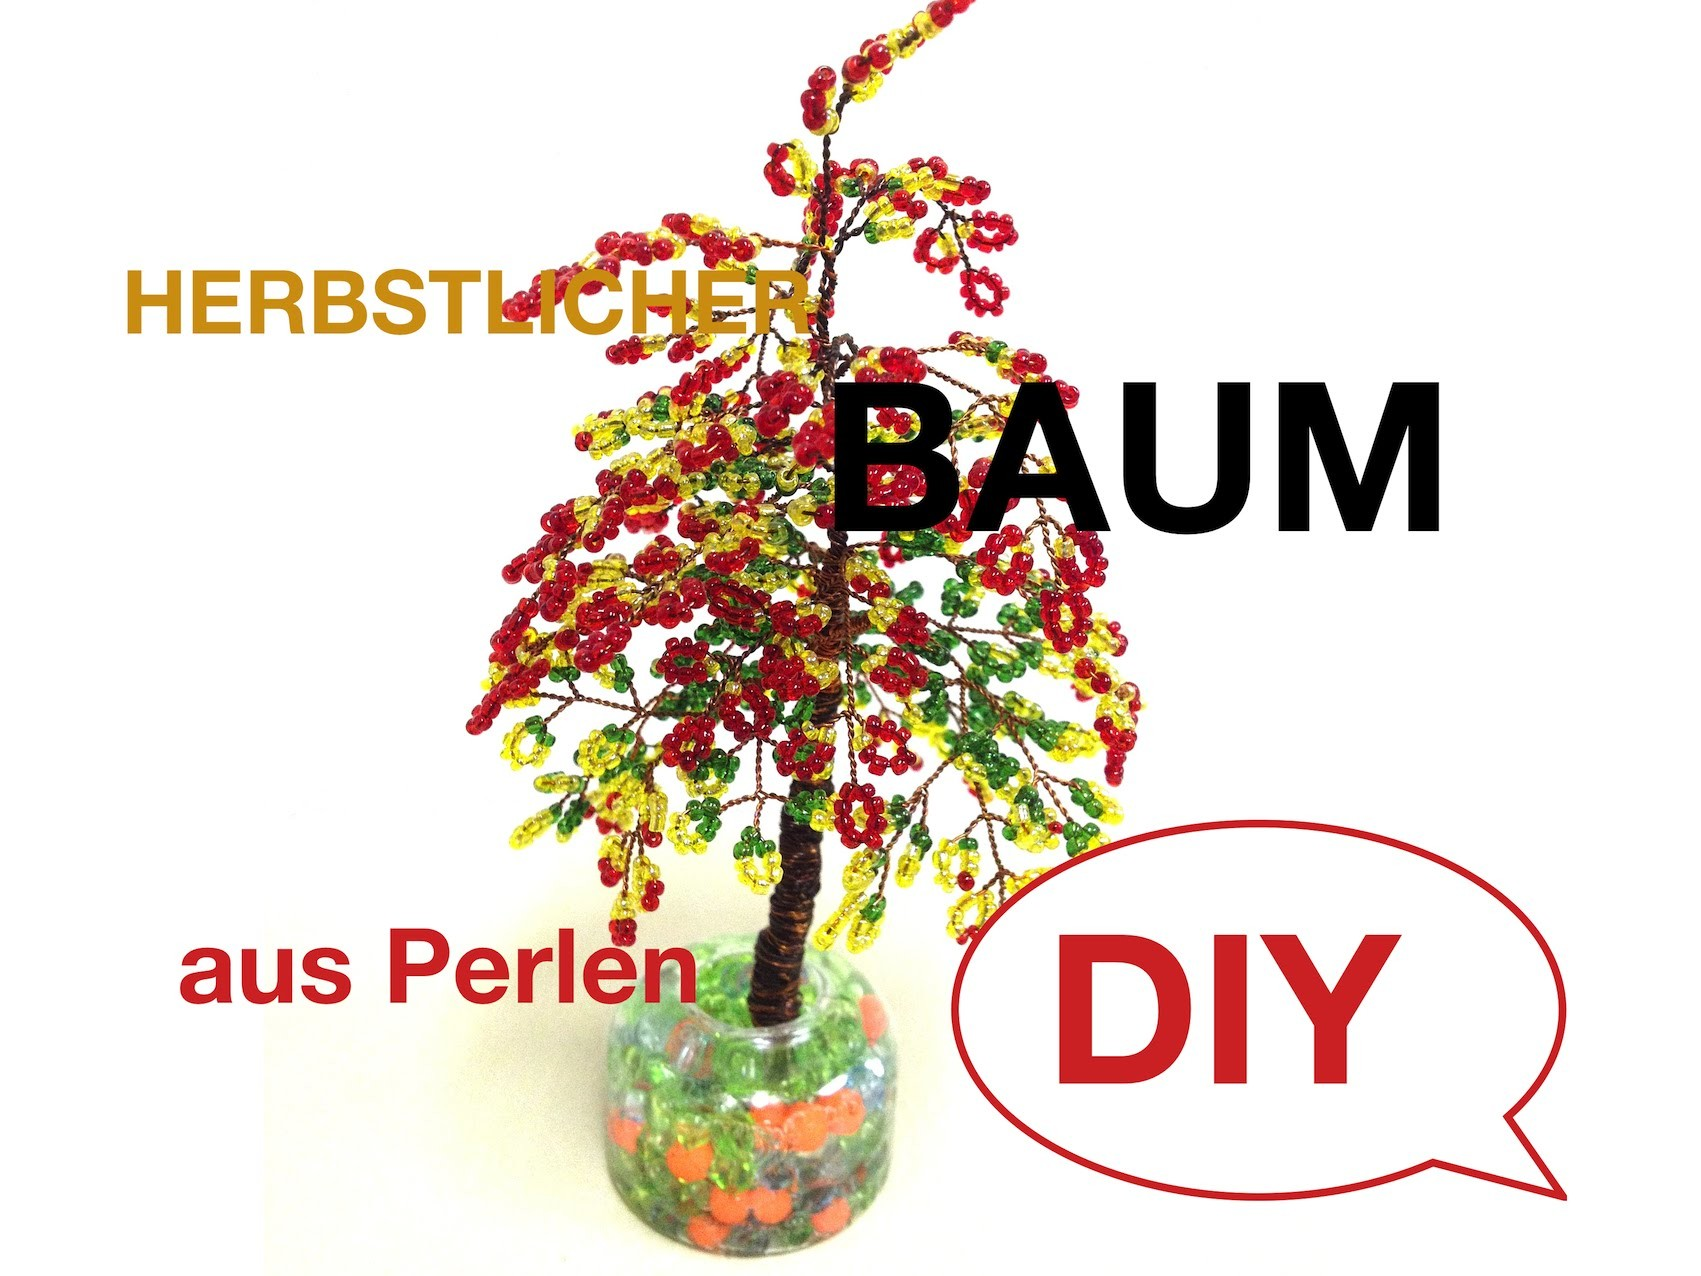 Bäume aus Glasperlen. Herbstlicher Baum. Trees out of beads. Biser. Anna's Perlen.